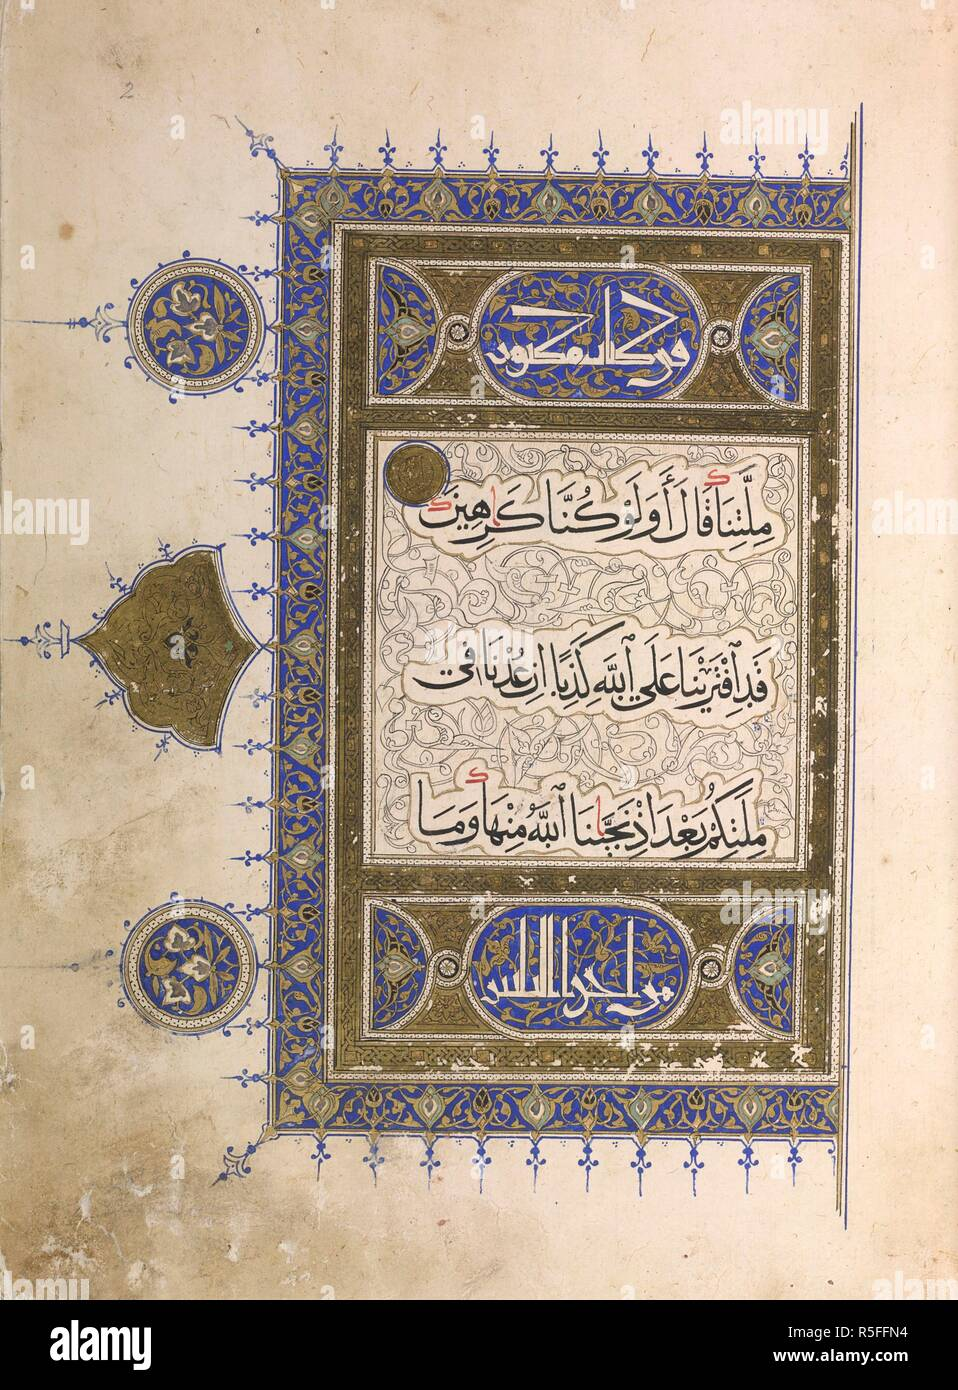 Page from a Qur'an. The Qur'an. Cairo, 14th century. A decorated text page from a Qur'an. Paper manuscript.  Image taken from The Qur'an.  Originally published/produced in Cairo, 14th century. . Source: Or. 848, f.2. Language: Arabic. - Stock Image